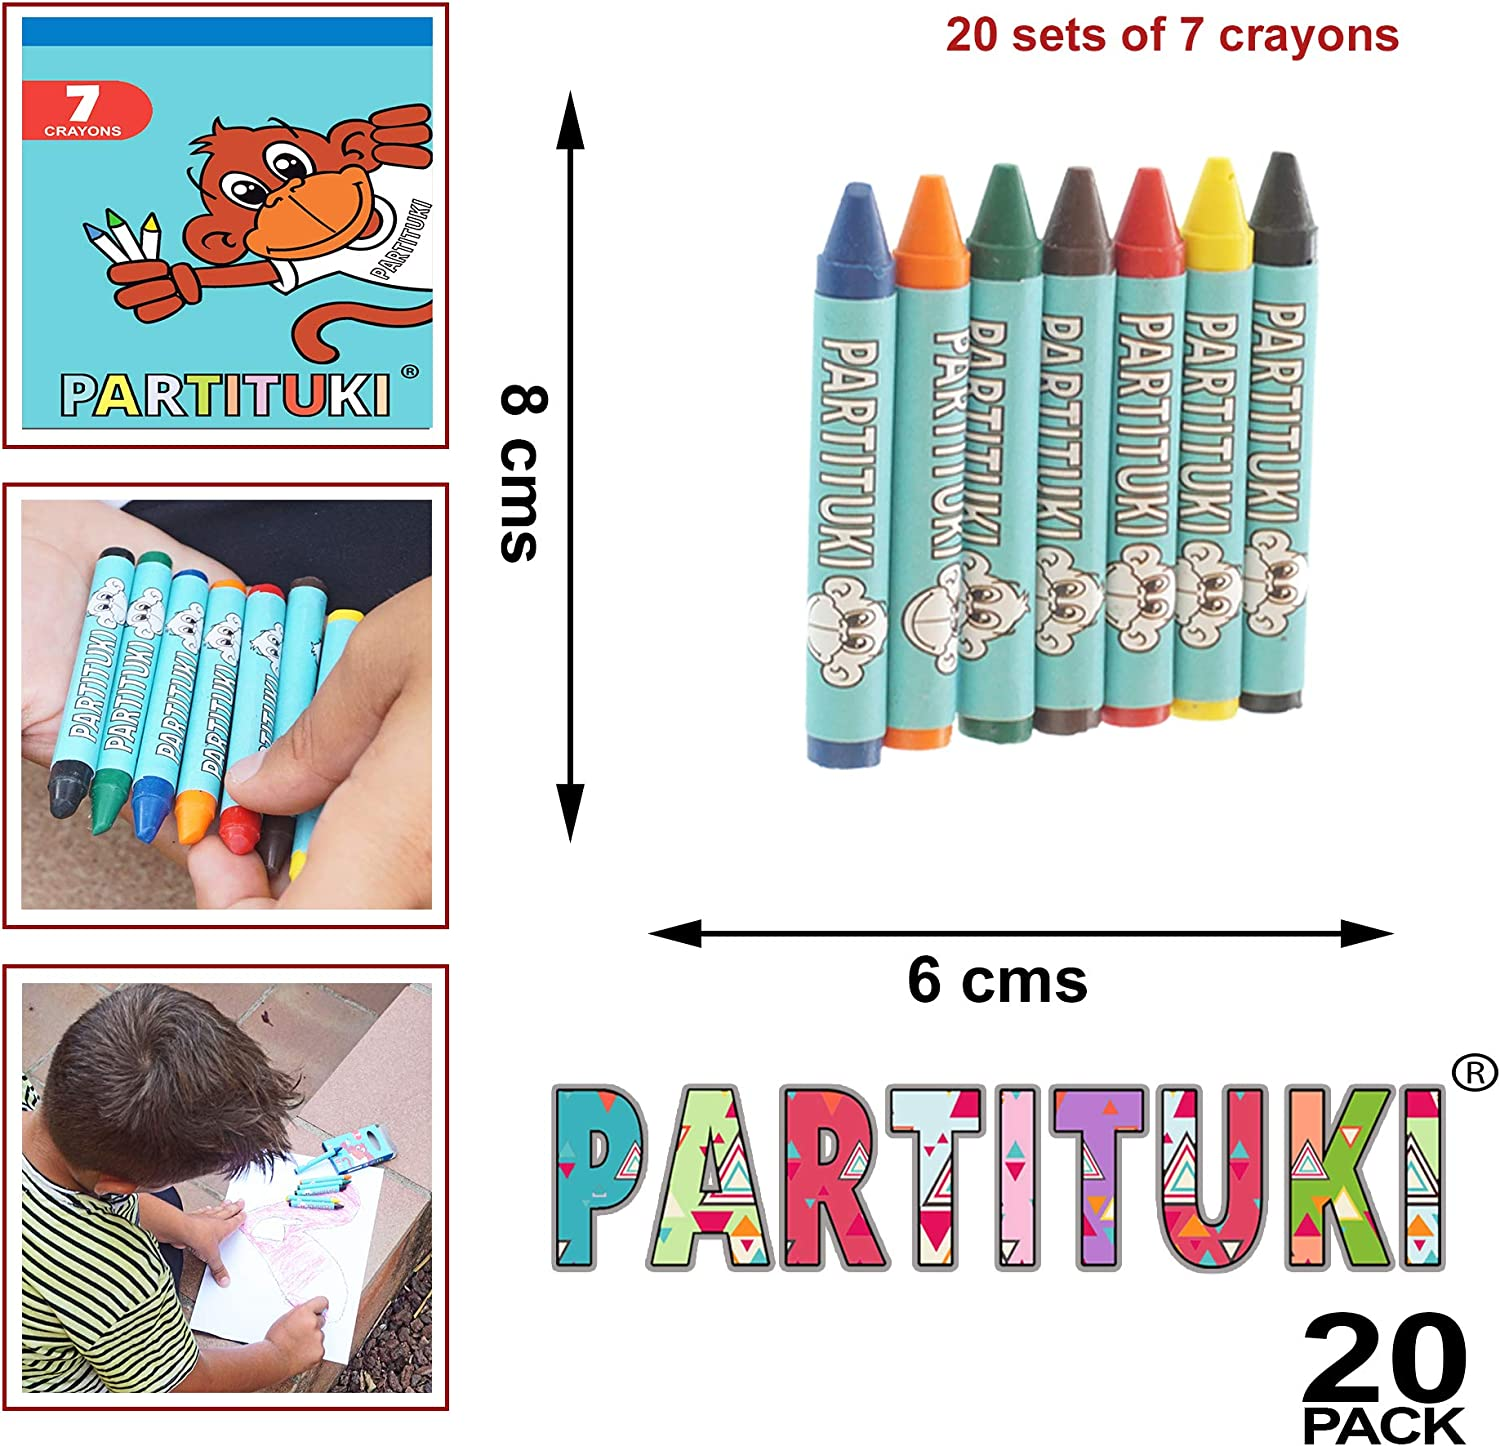 Partituki Party Favours for Children Pinata Birthday Gifts for Kids 10 Boxes with 7 Assorted Crayons per Box Non Toxic EU Certified.